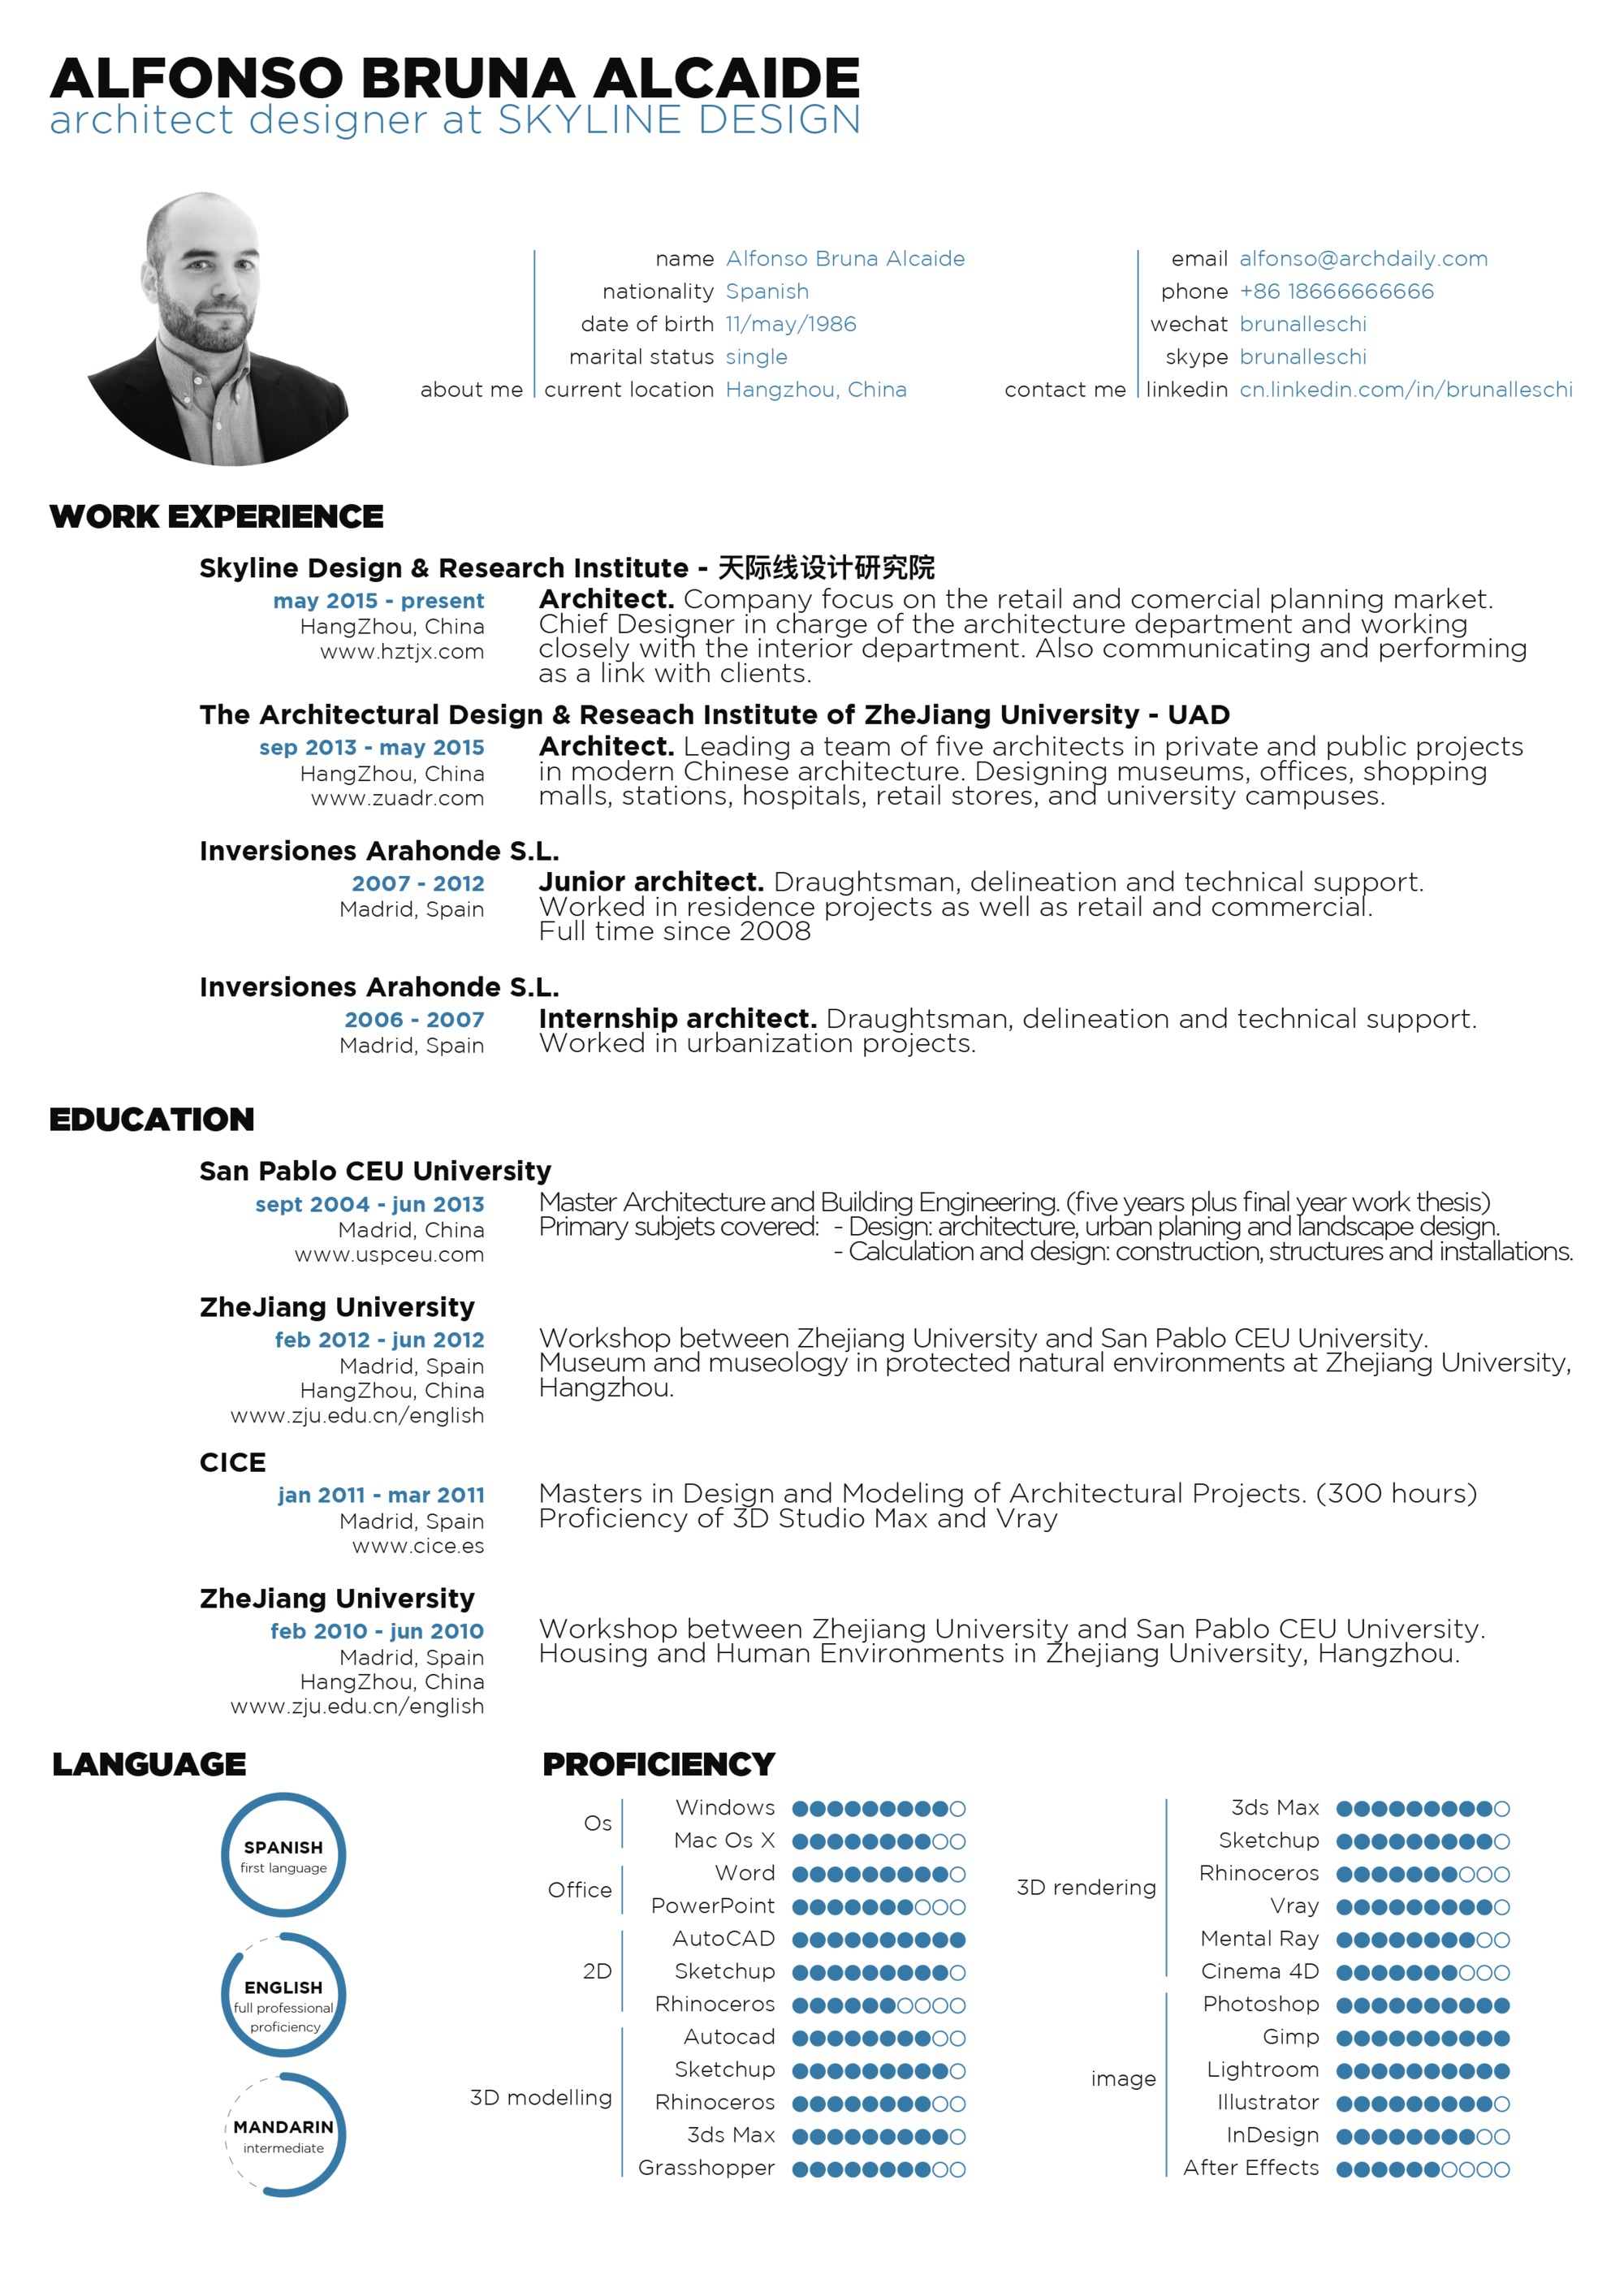 architect cv - Dorit.mercatodos.co